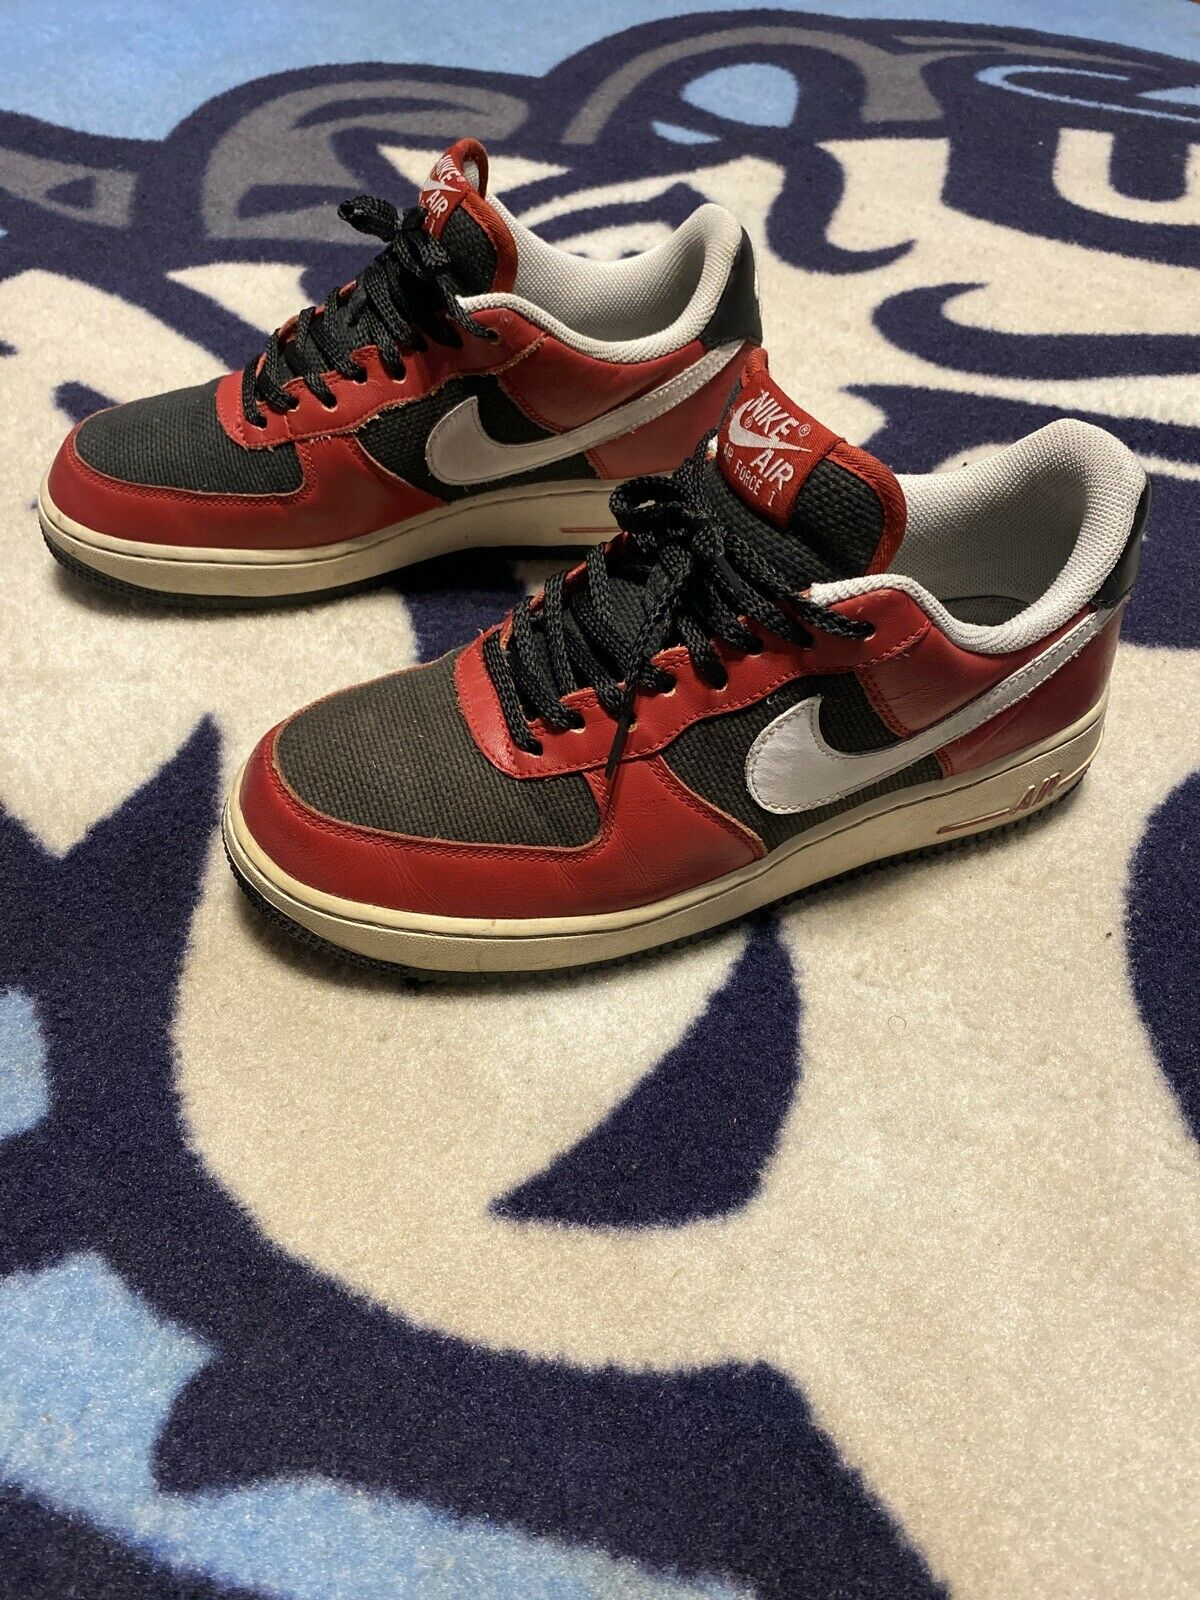 Nike Air Force 1 One Low Top Shoes Red